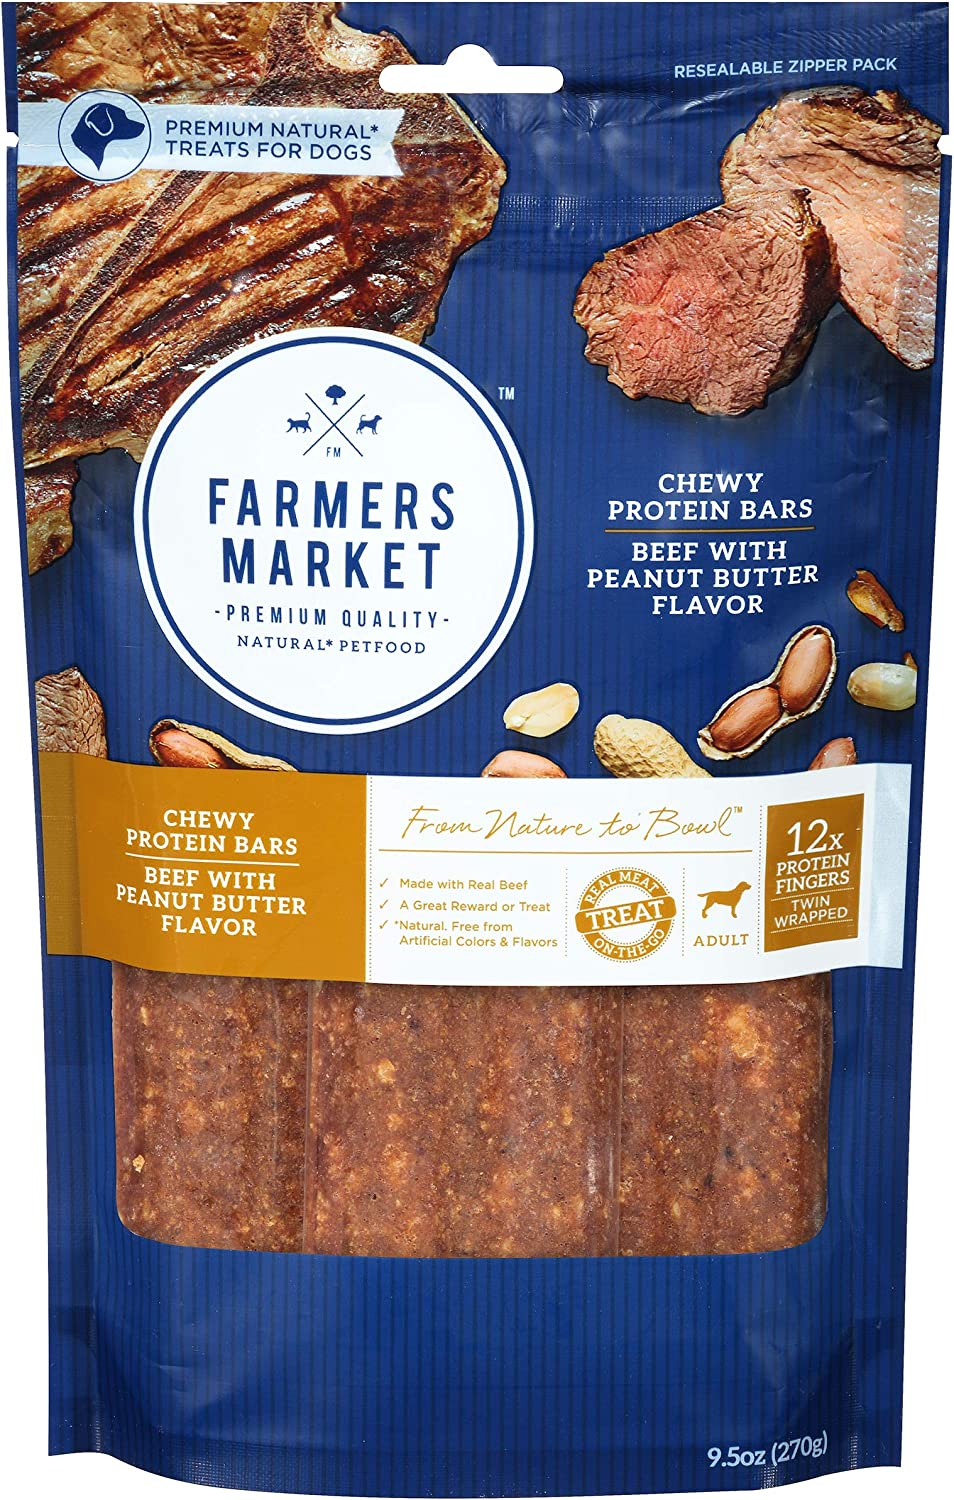 Farmers Market Pet Food Premium Natural Chewy Protein Bars Dog Treats, 9.5 Oz. Bag, Beef With Peanut Butter Flavor